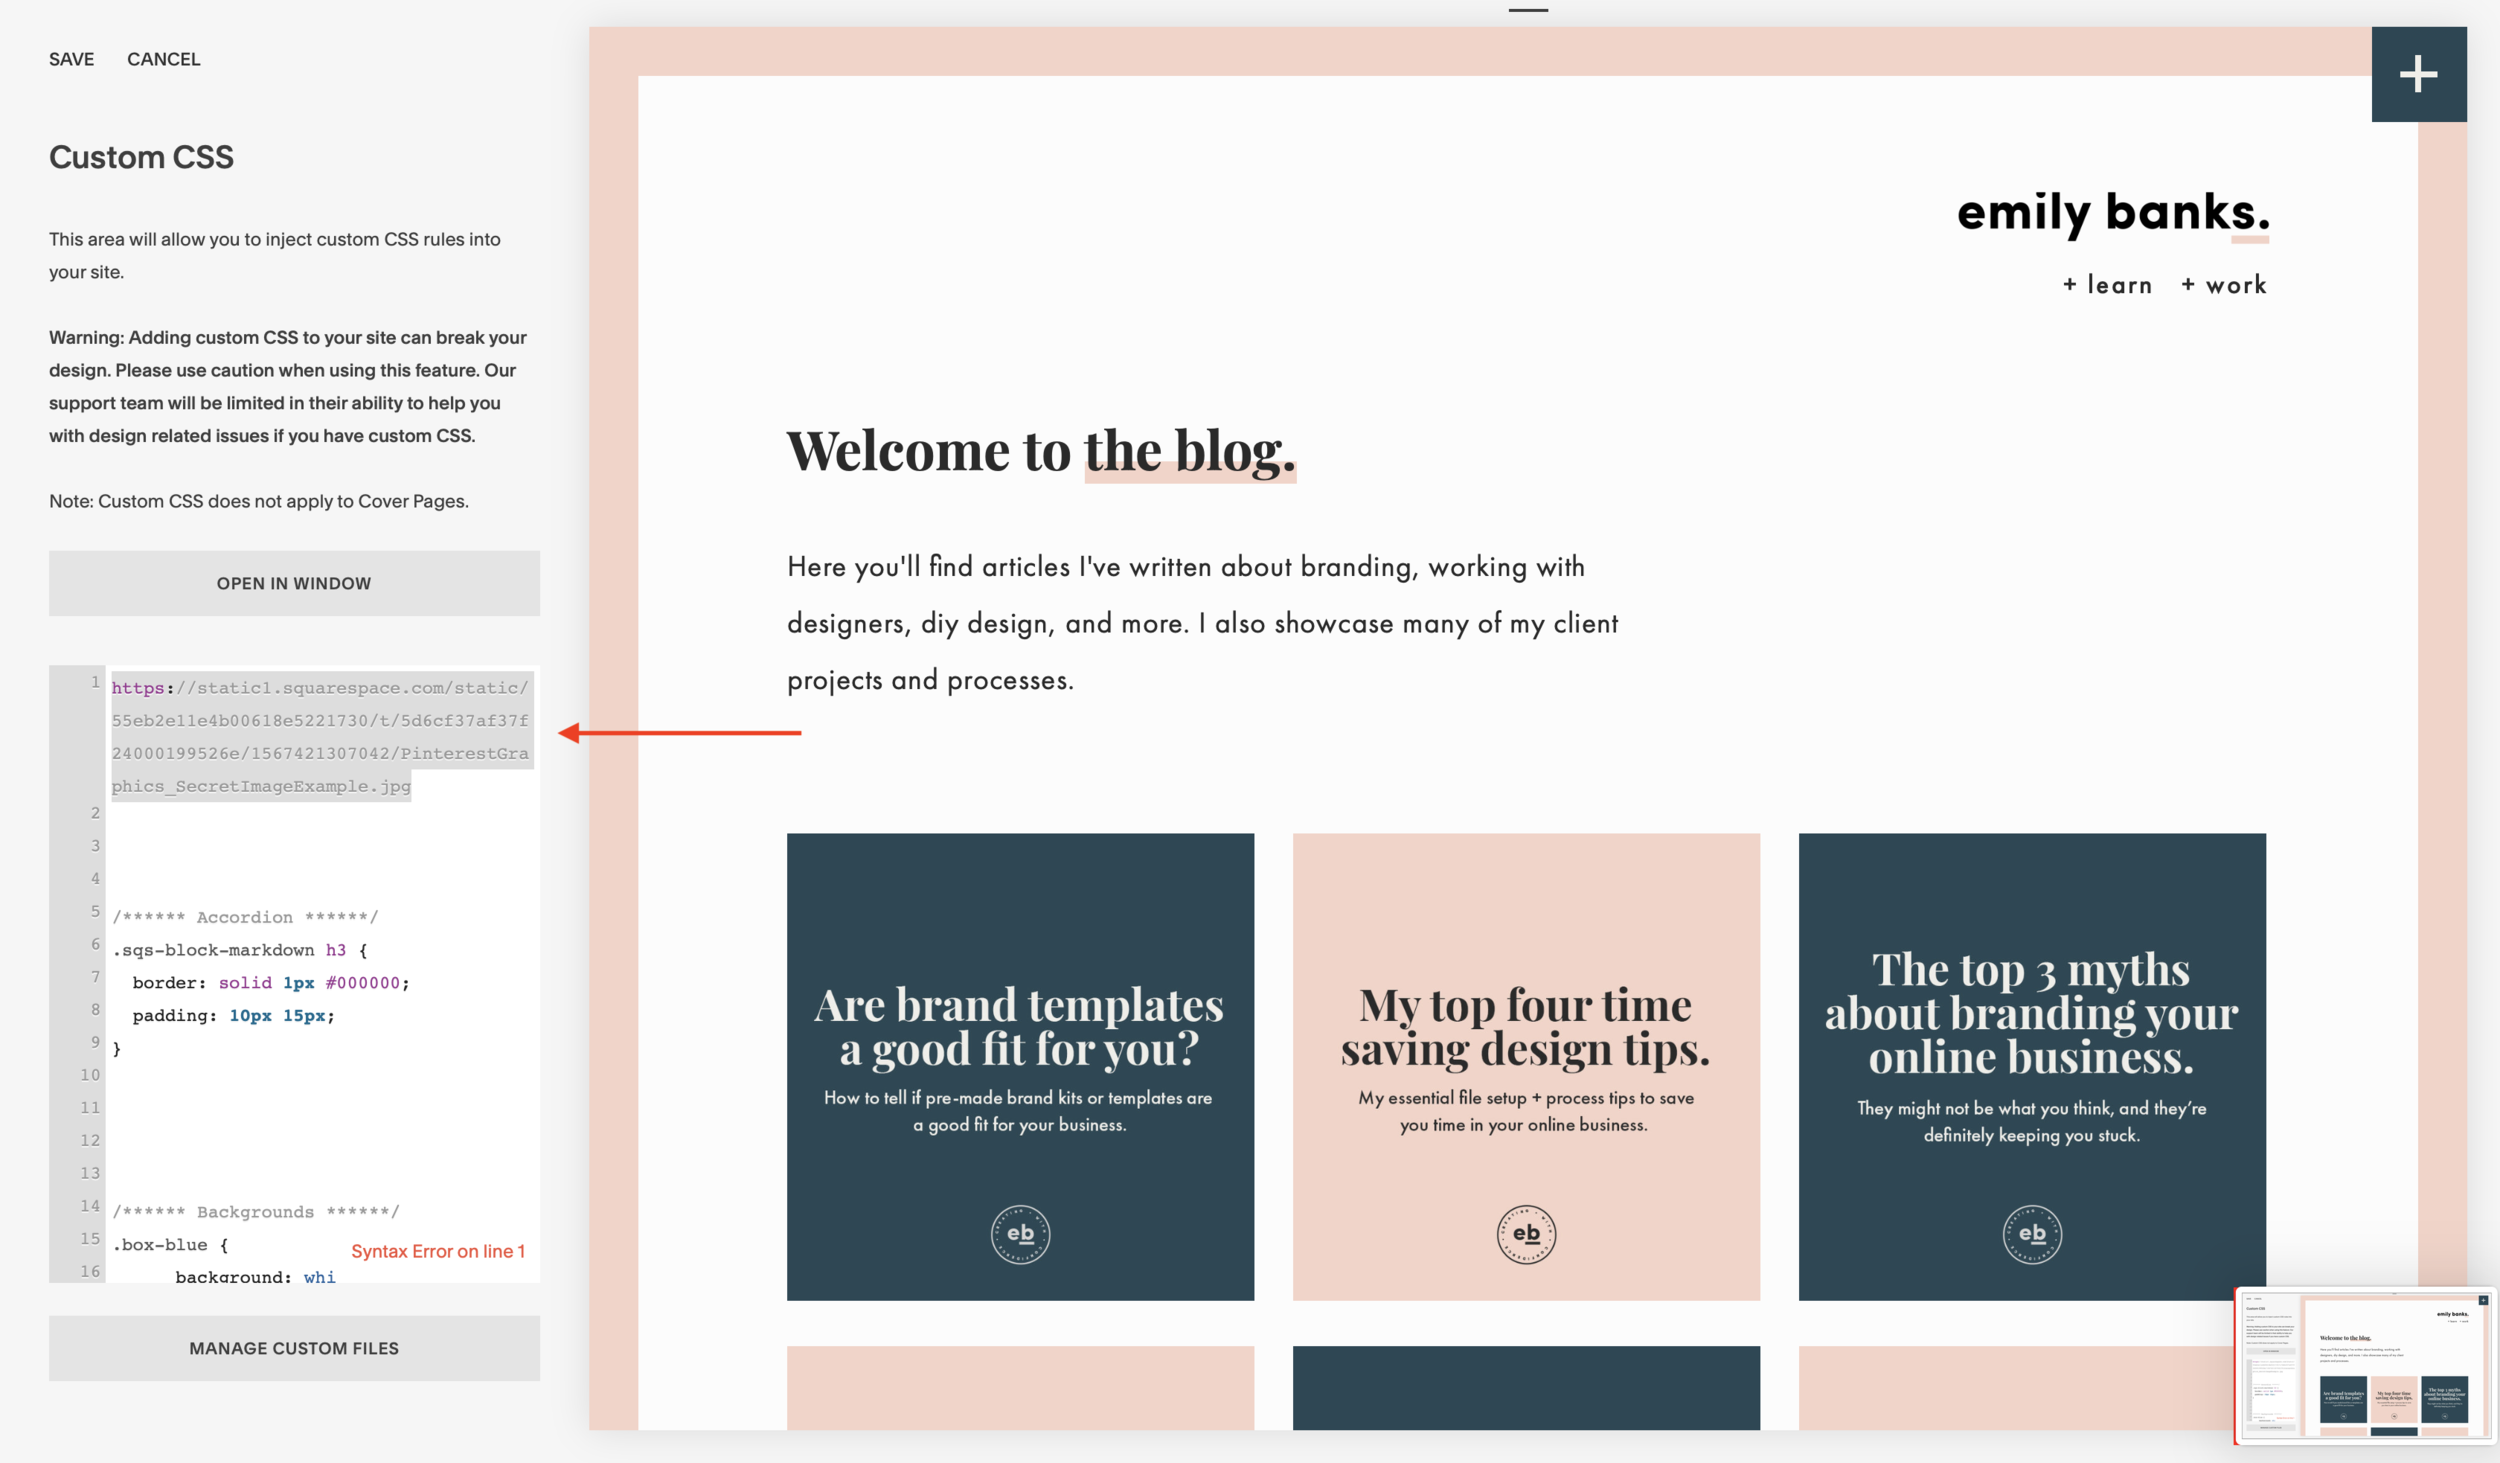 Get seen on Pinterest with this simple graphic design trick. - Emily Banks Creative